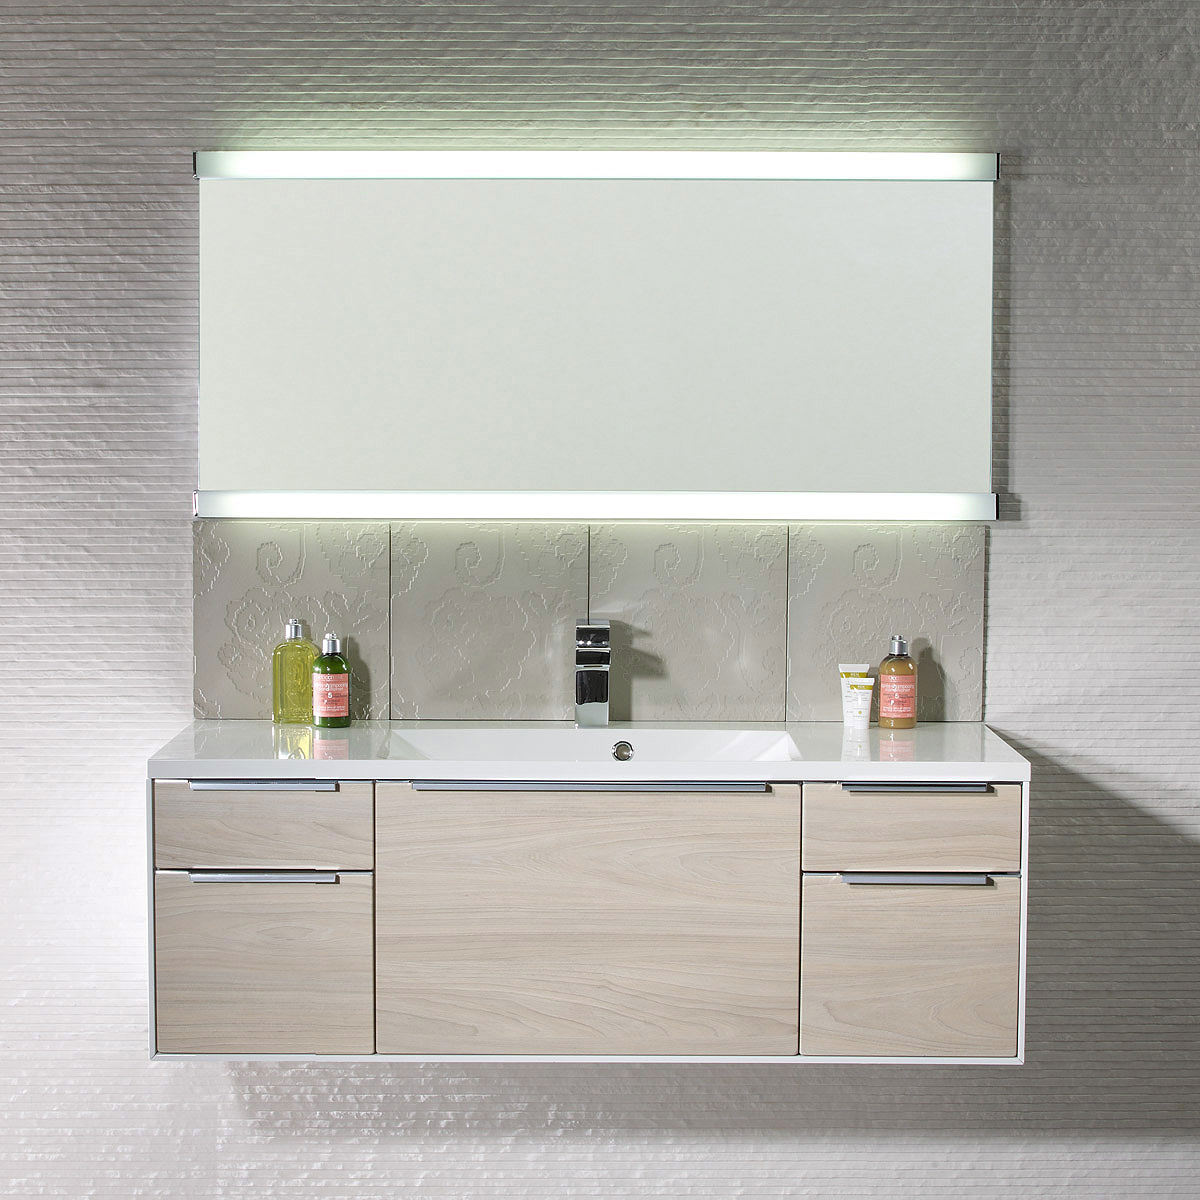 Illuminated Mirrors Bathroom: Roper Rhodes Transcend Fluorescent Illuminated Mirror